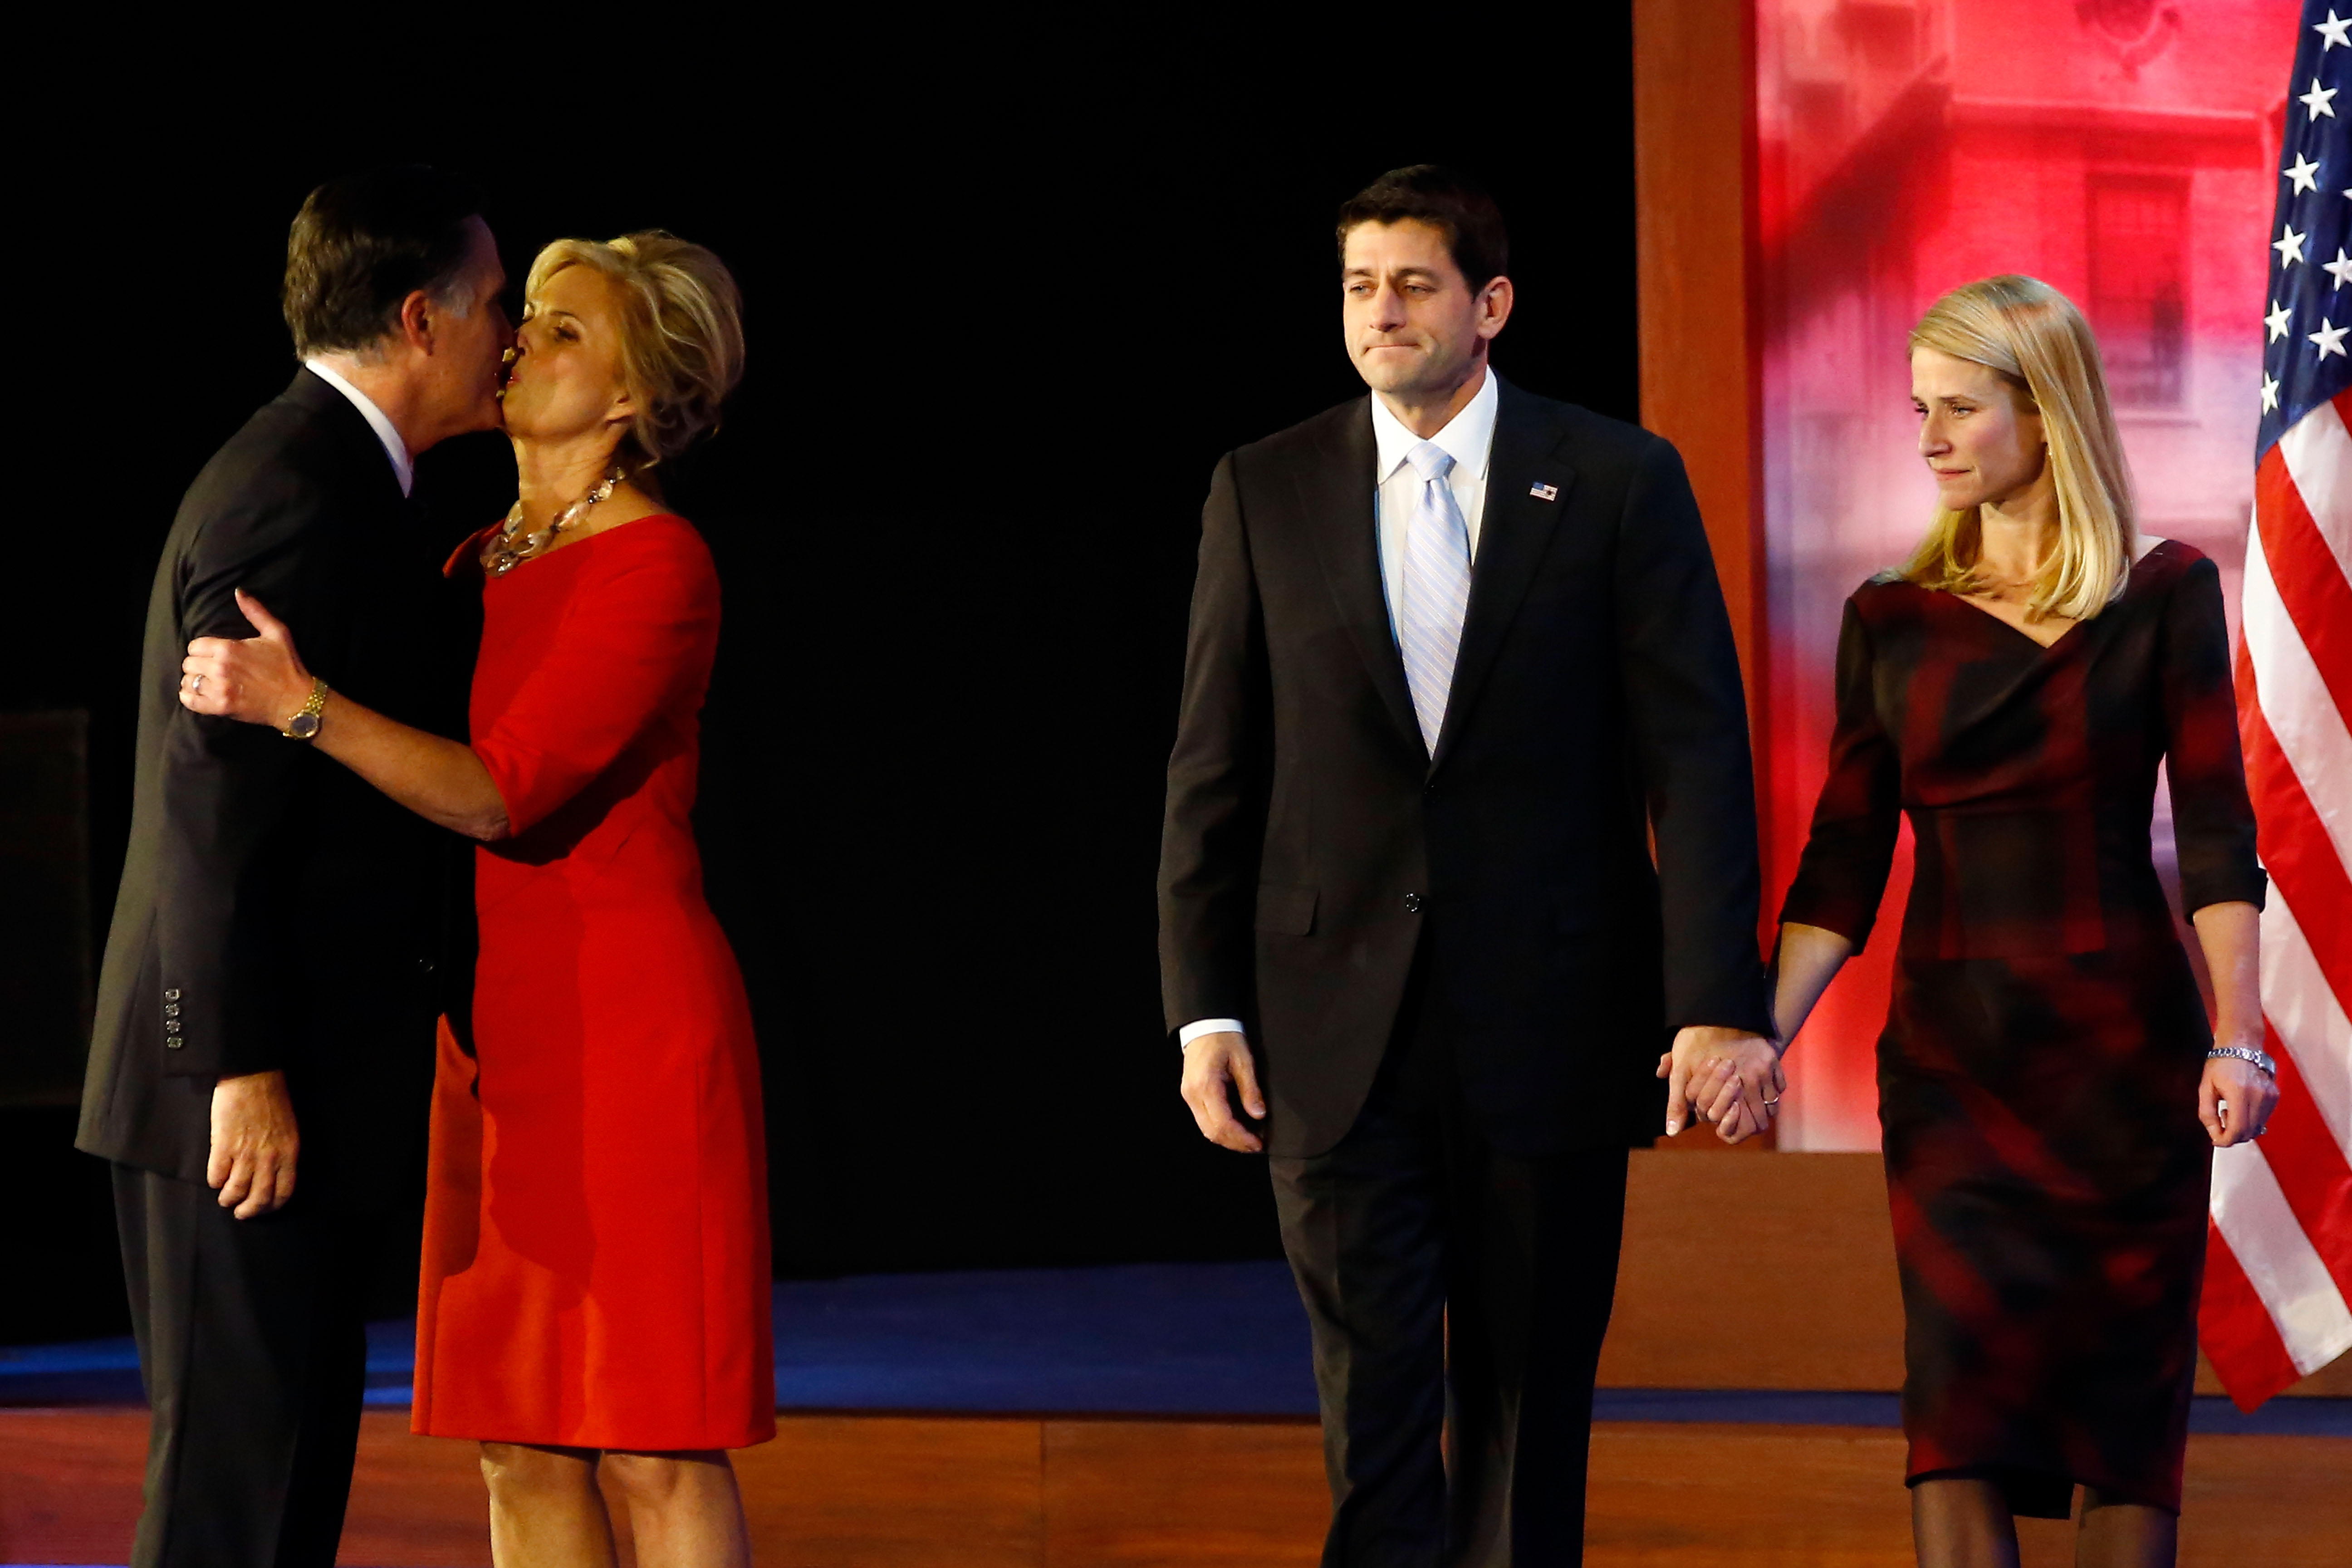 (L-R) Republican presidential candidate, Mitt Romney, kisses his wife, Ann Romney, in front of Republican vice presidential candidate, U.S. Rep. Paul Ryan (R-WI) and wife, Janna Ryan, on stage after conceding the presidency during Mitt Romney's campaign election night event at the Boston Convention—Exhibition Center on Nov. 7, 2012 in Boston.